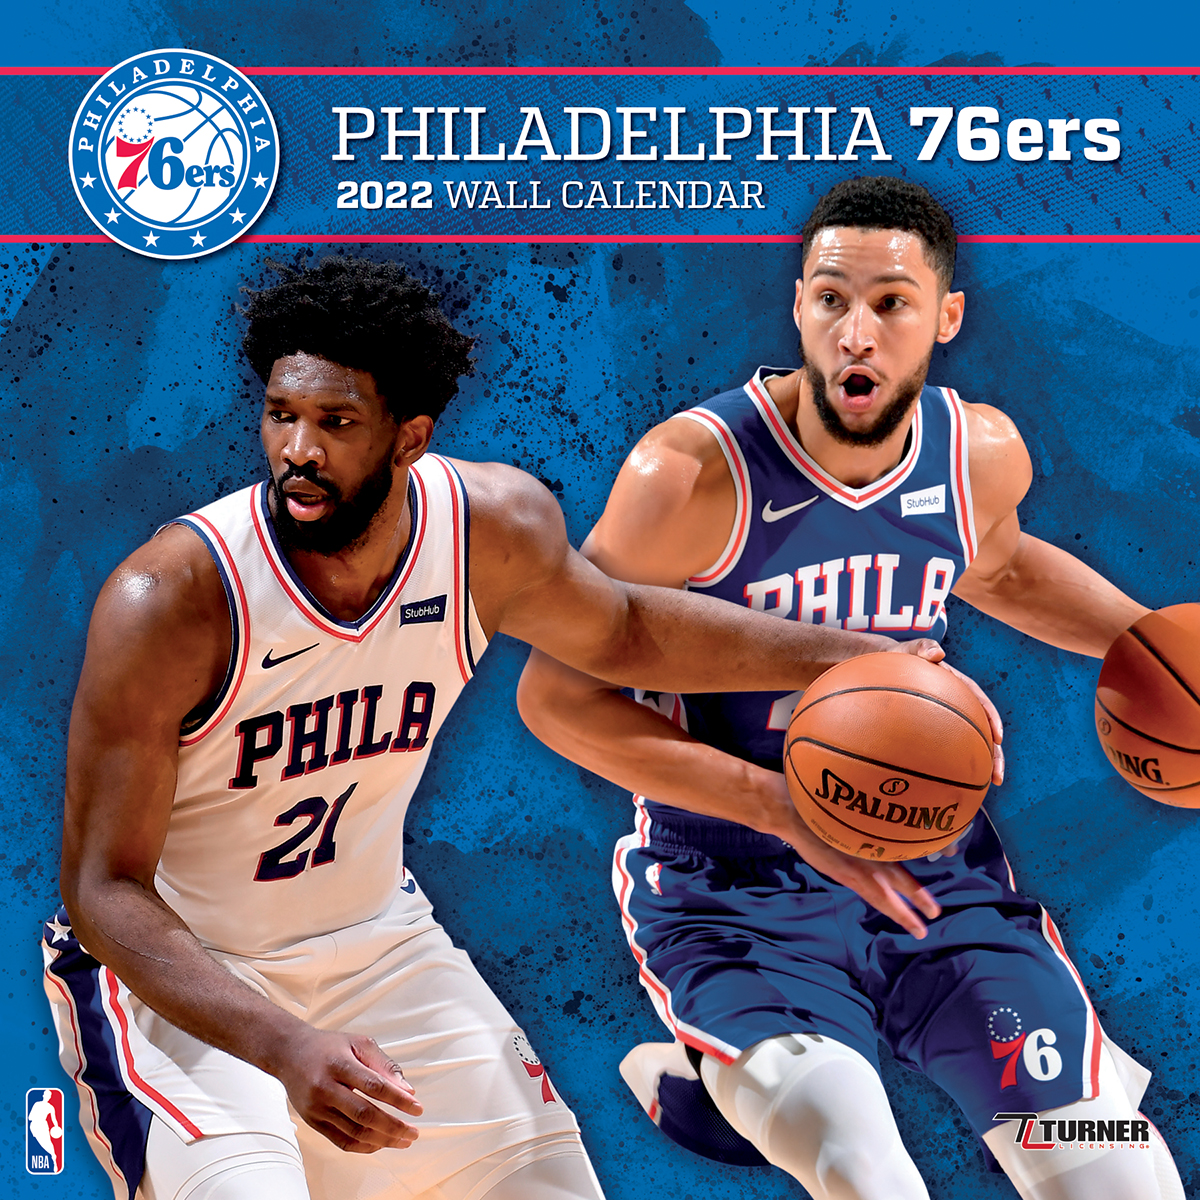 Philadelphia 76ers 2020 NBA Team Wall Calendar